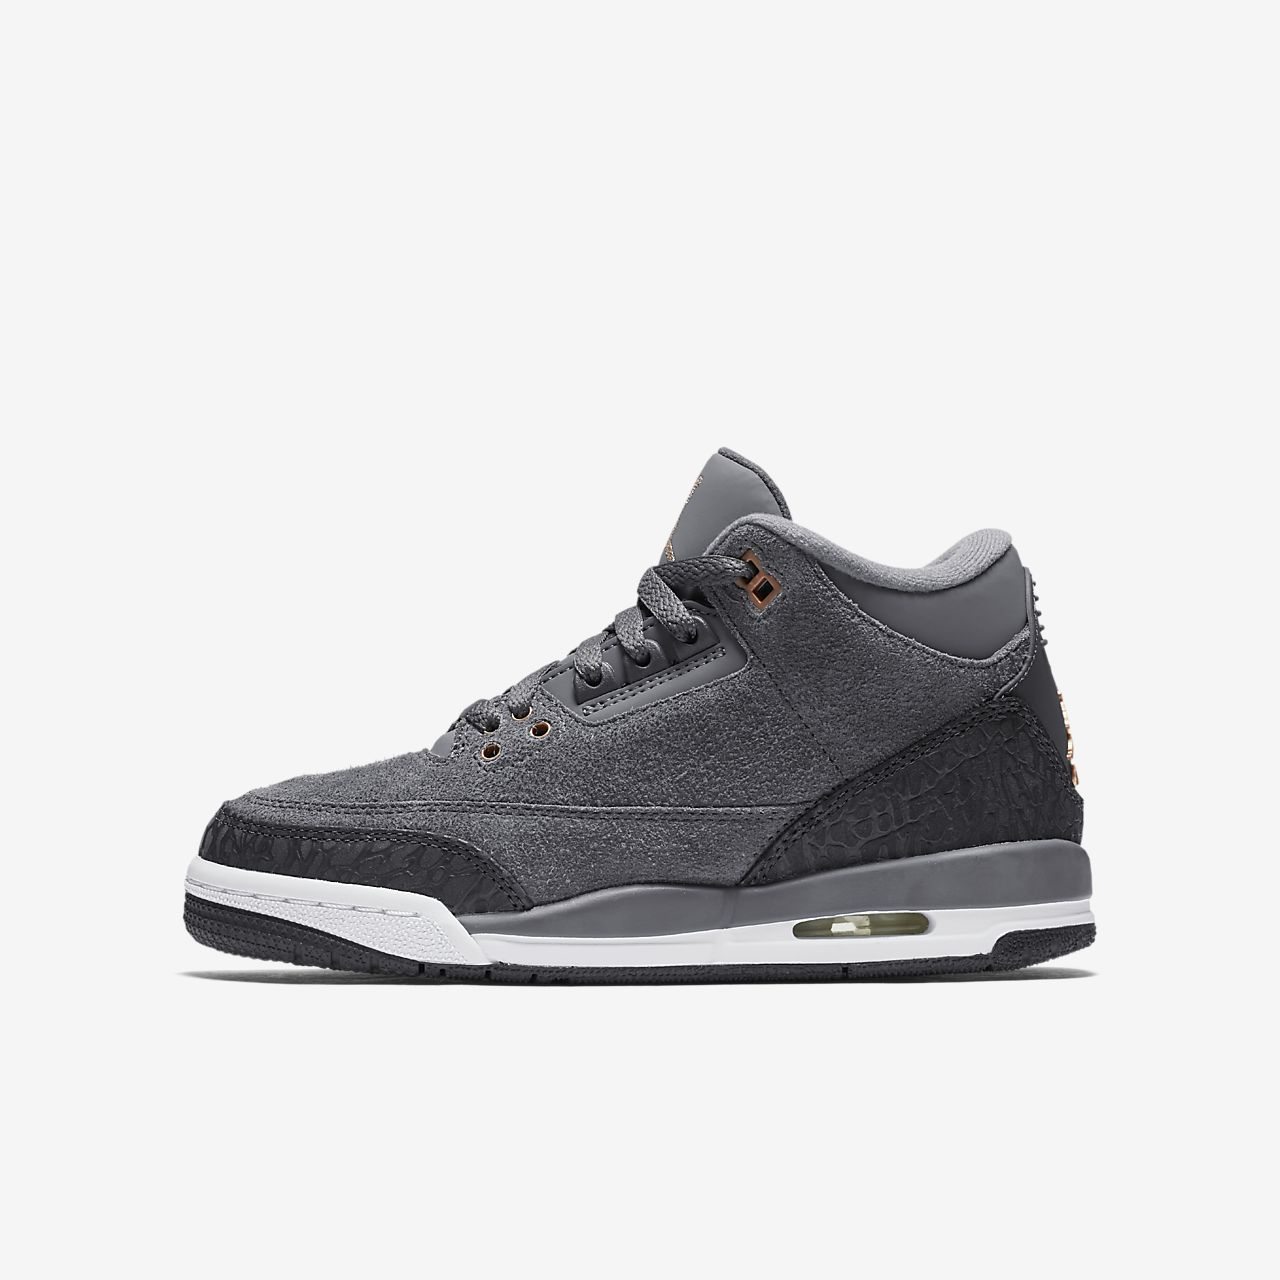 ... Air Jordan 3 Retro Big Kids' Shoe